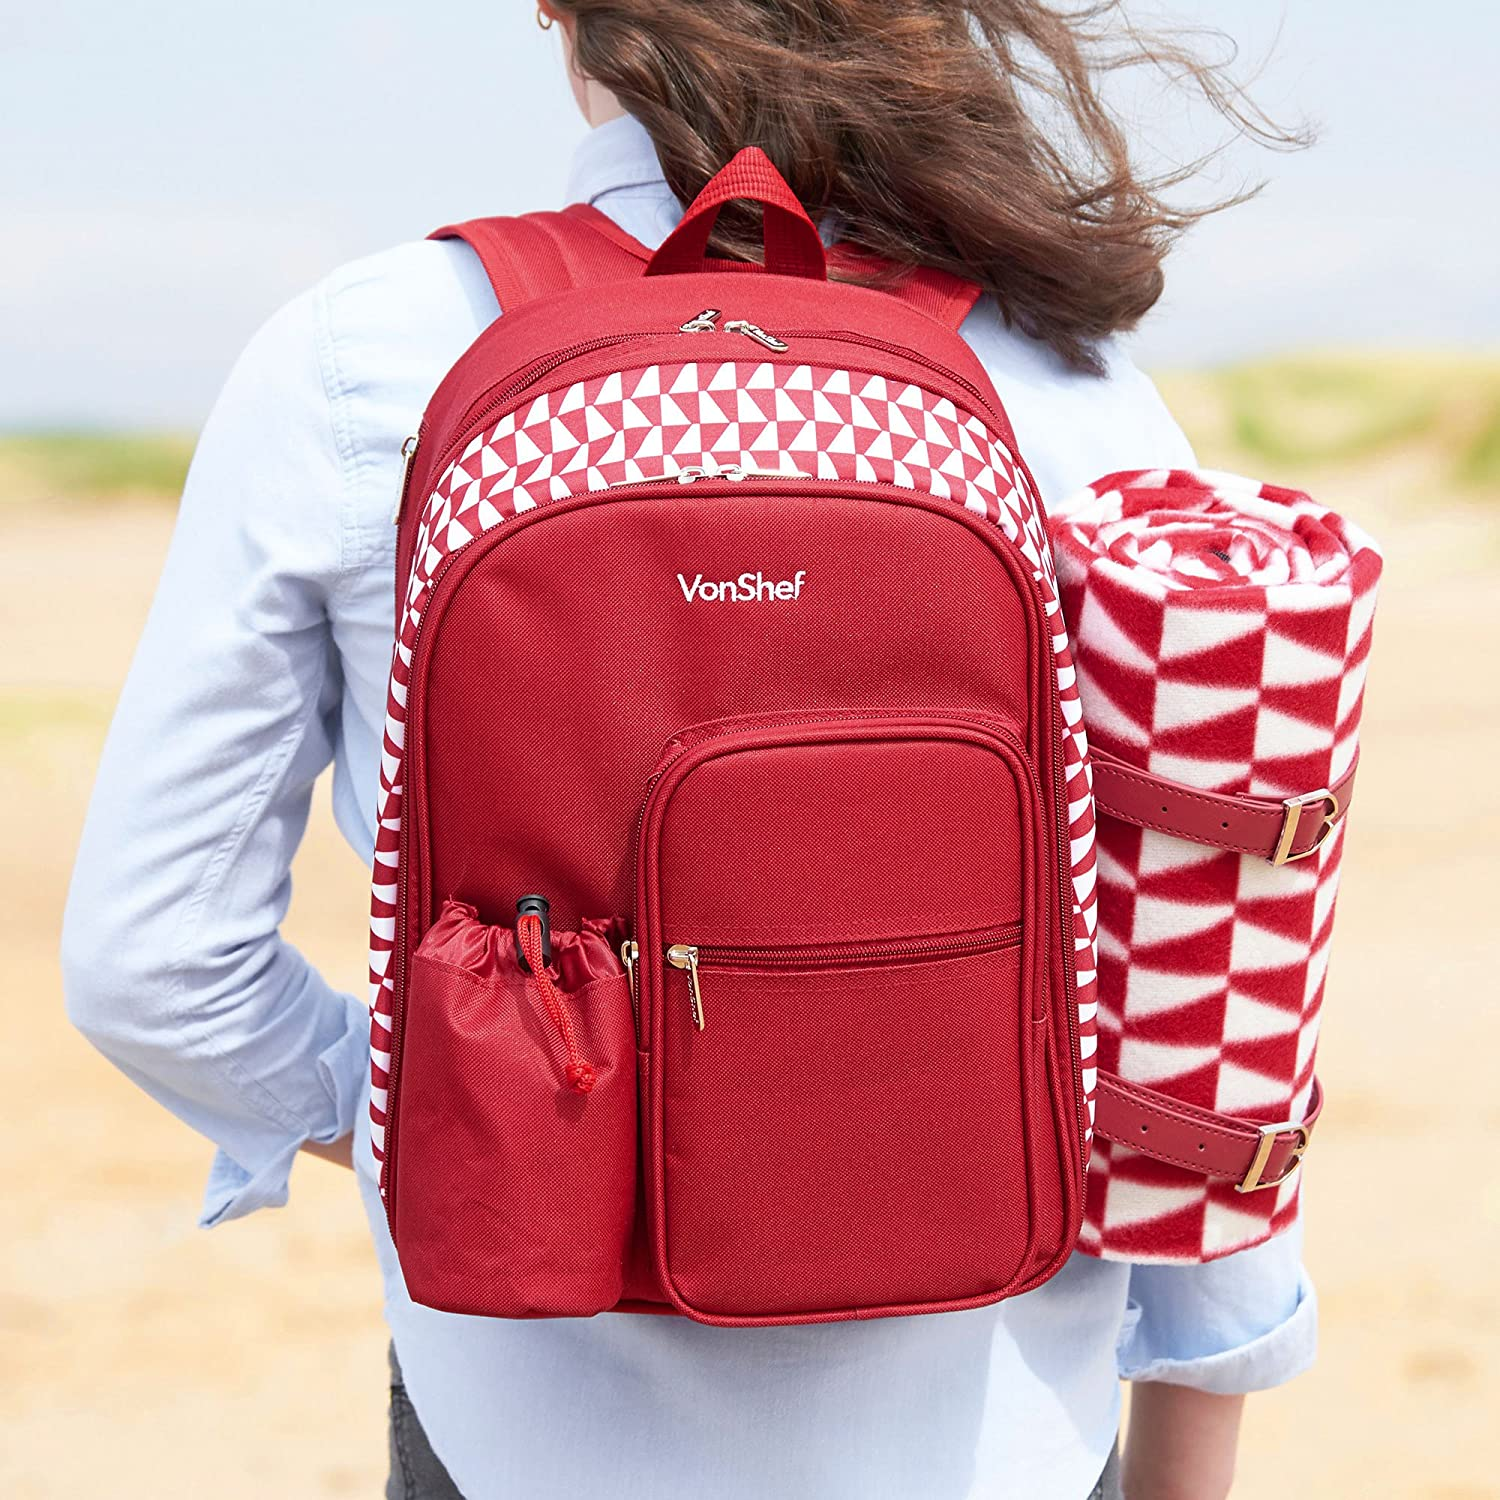 VonShef Two-Person Geo Red Picnic Backpack With Blanket – Includes 17-Piece Dining Set and Cooler Compartment